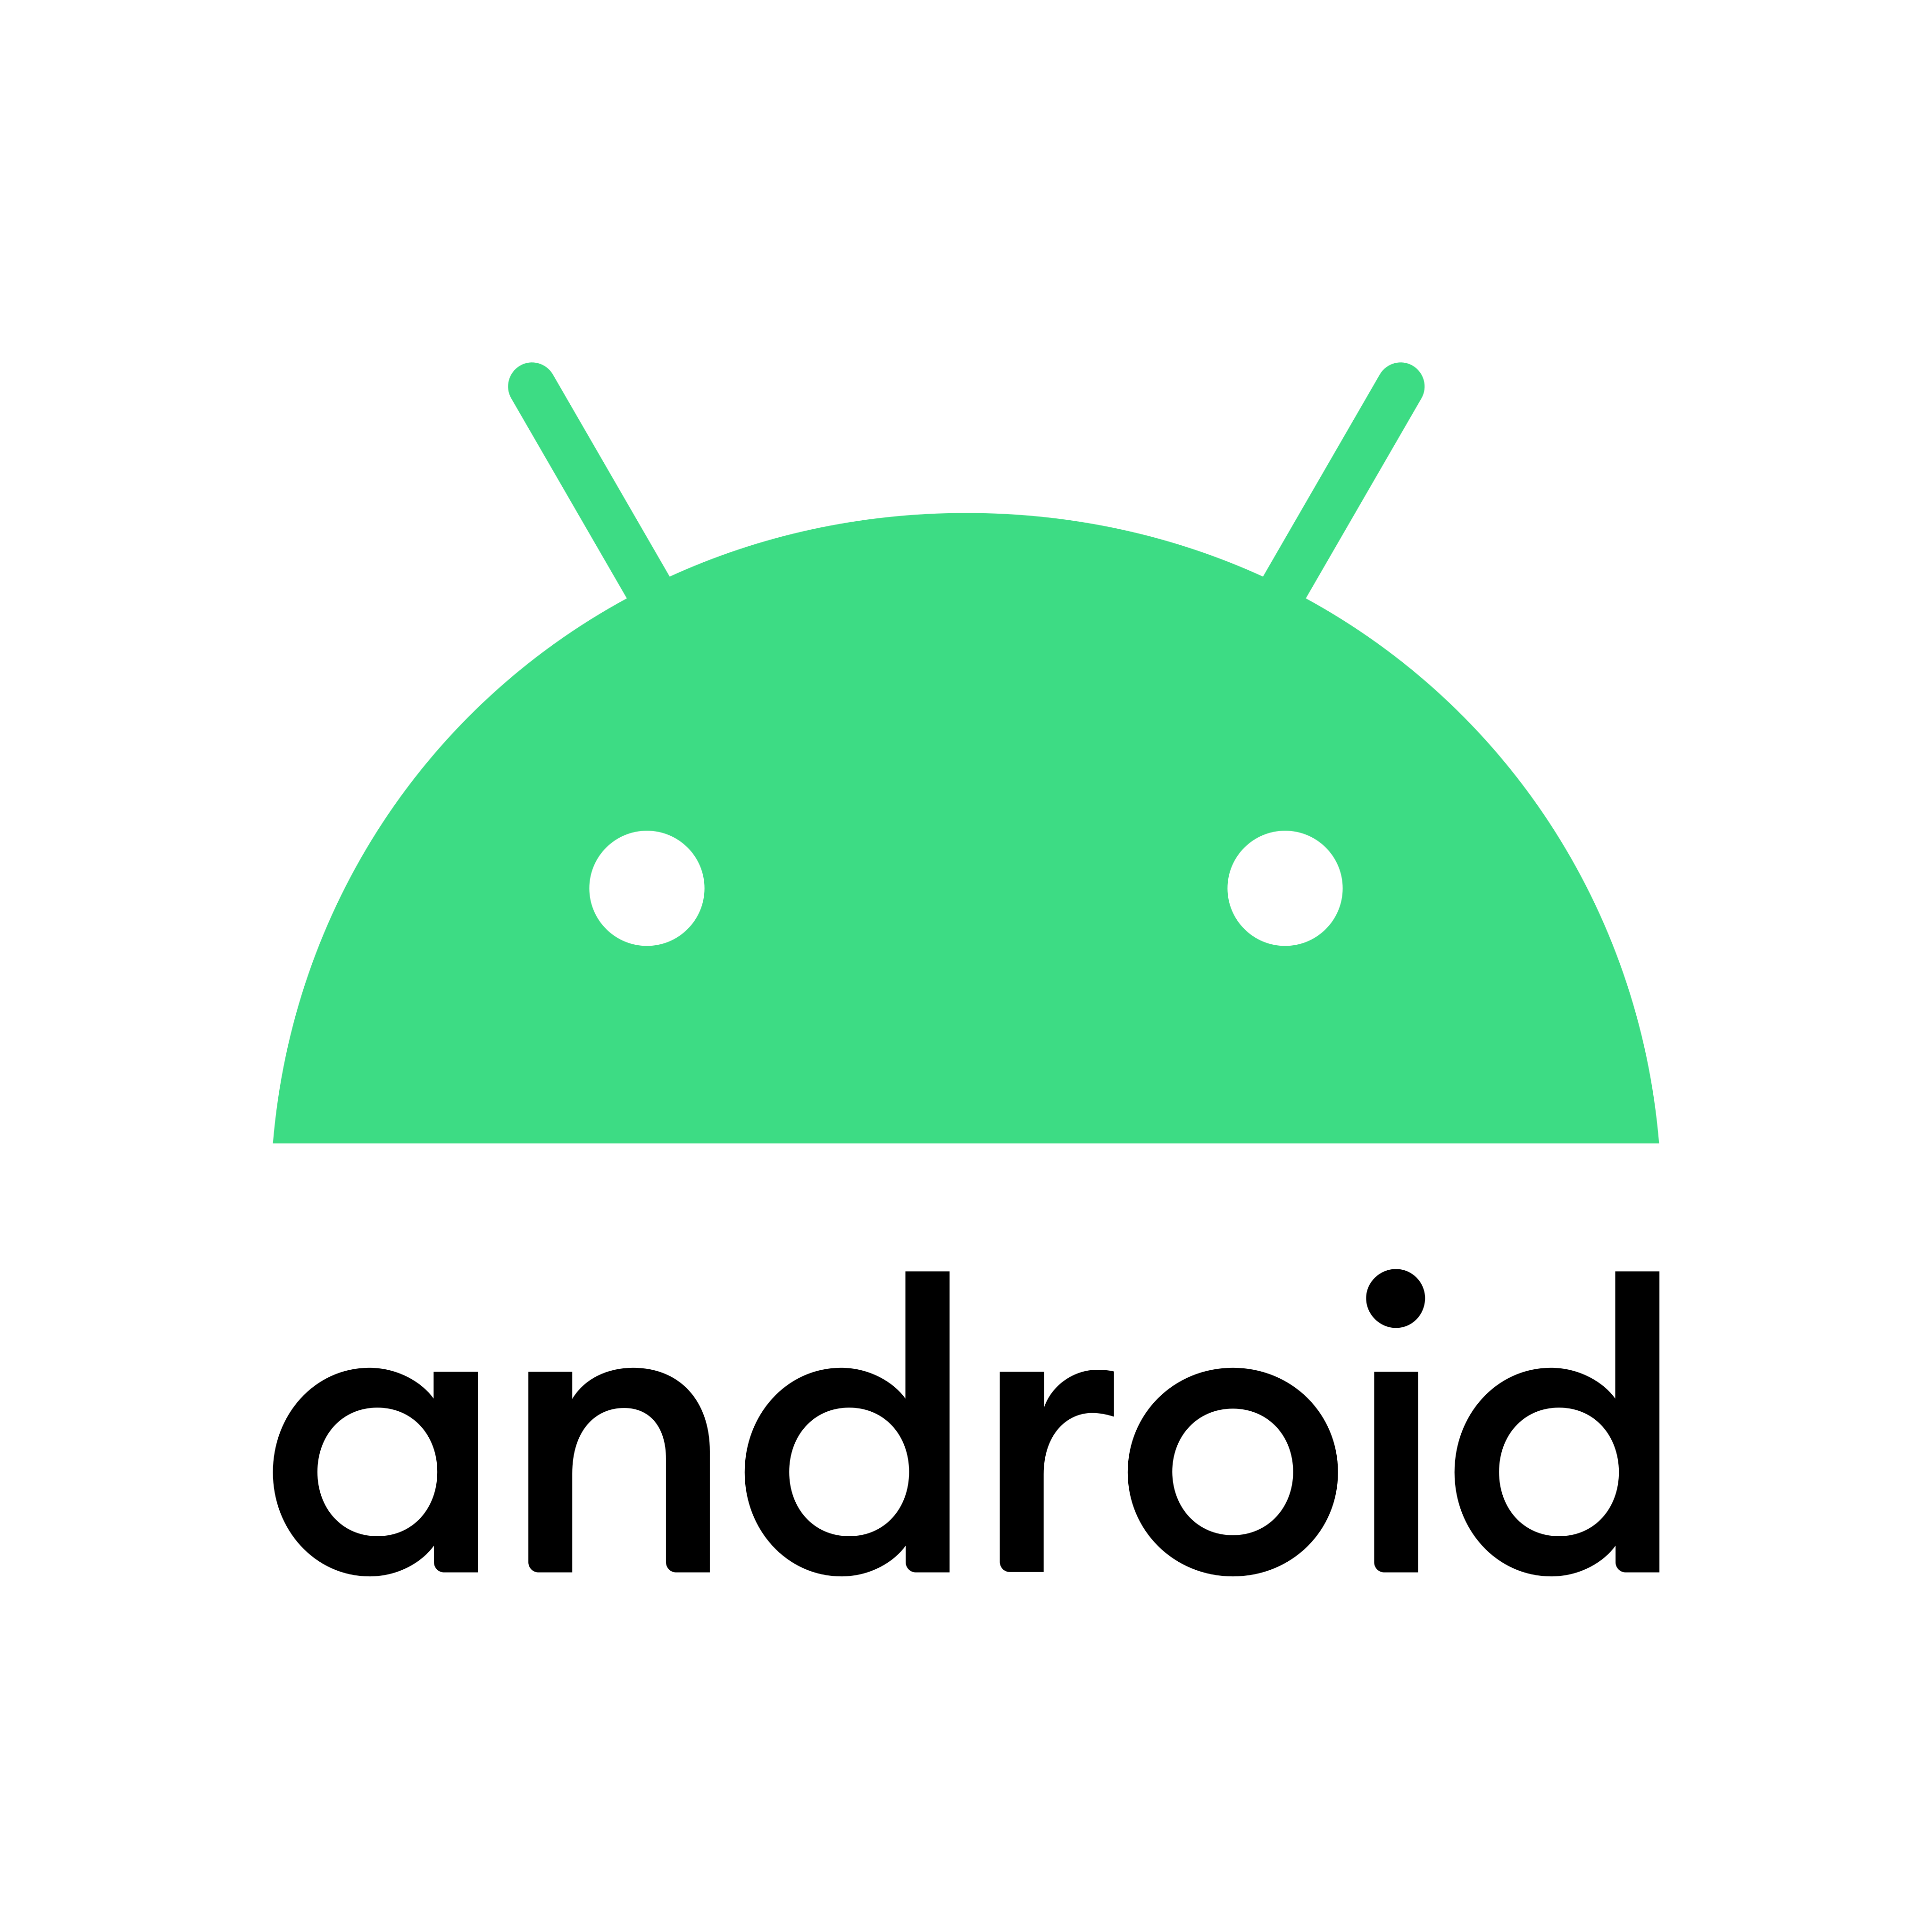 android logo 0 1 - Android Logo